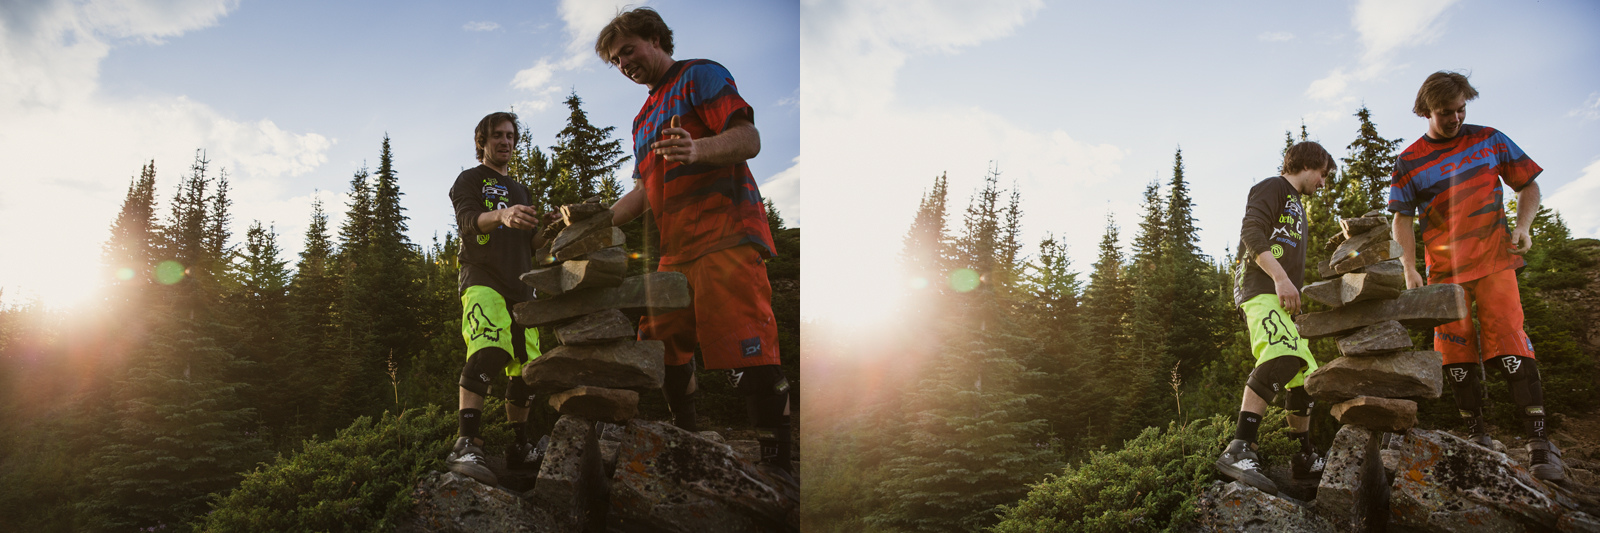 Images for the article on Vernon which is in the North part of the Okanagan and close to Silver Star Bike Park.